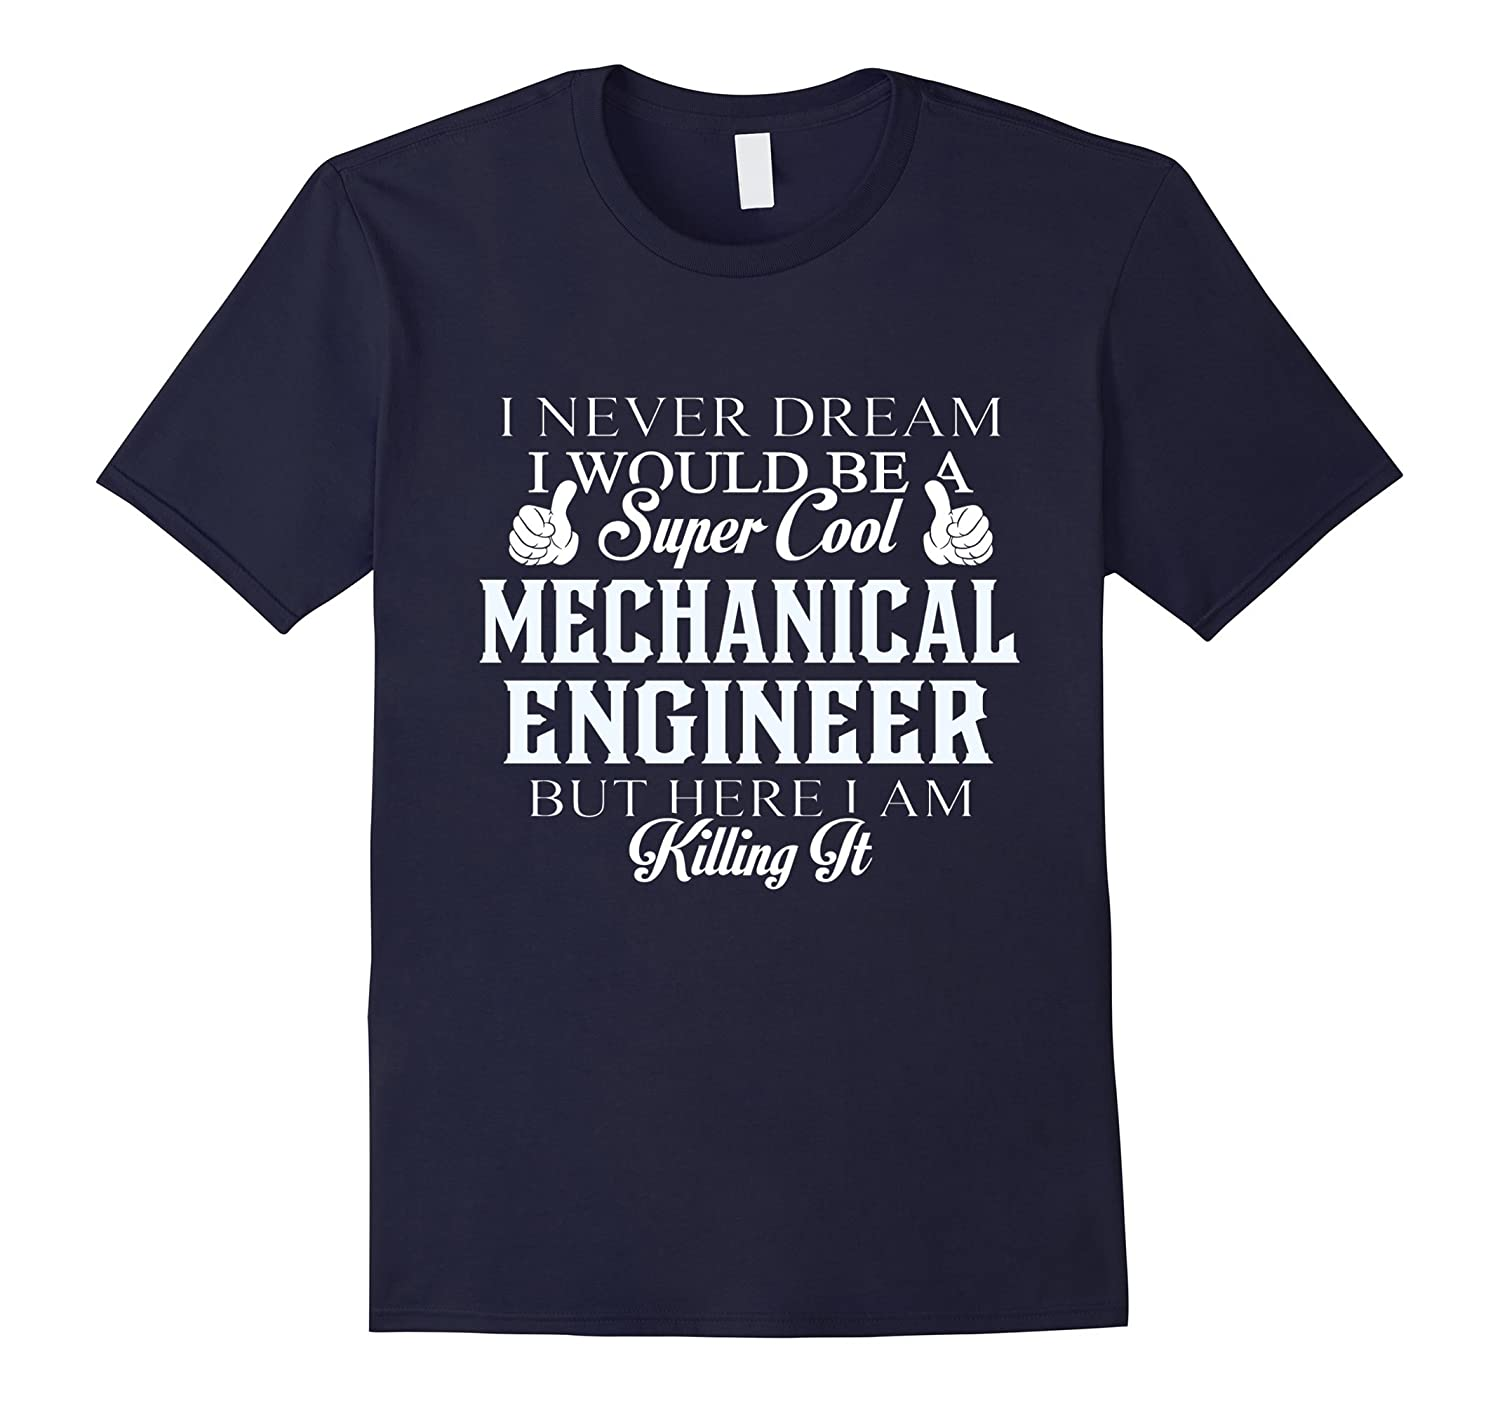 Dreamed would be super cool Mechanical engineer killing it-Vaci